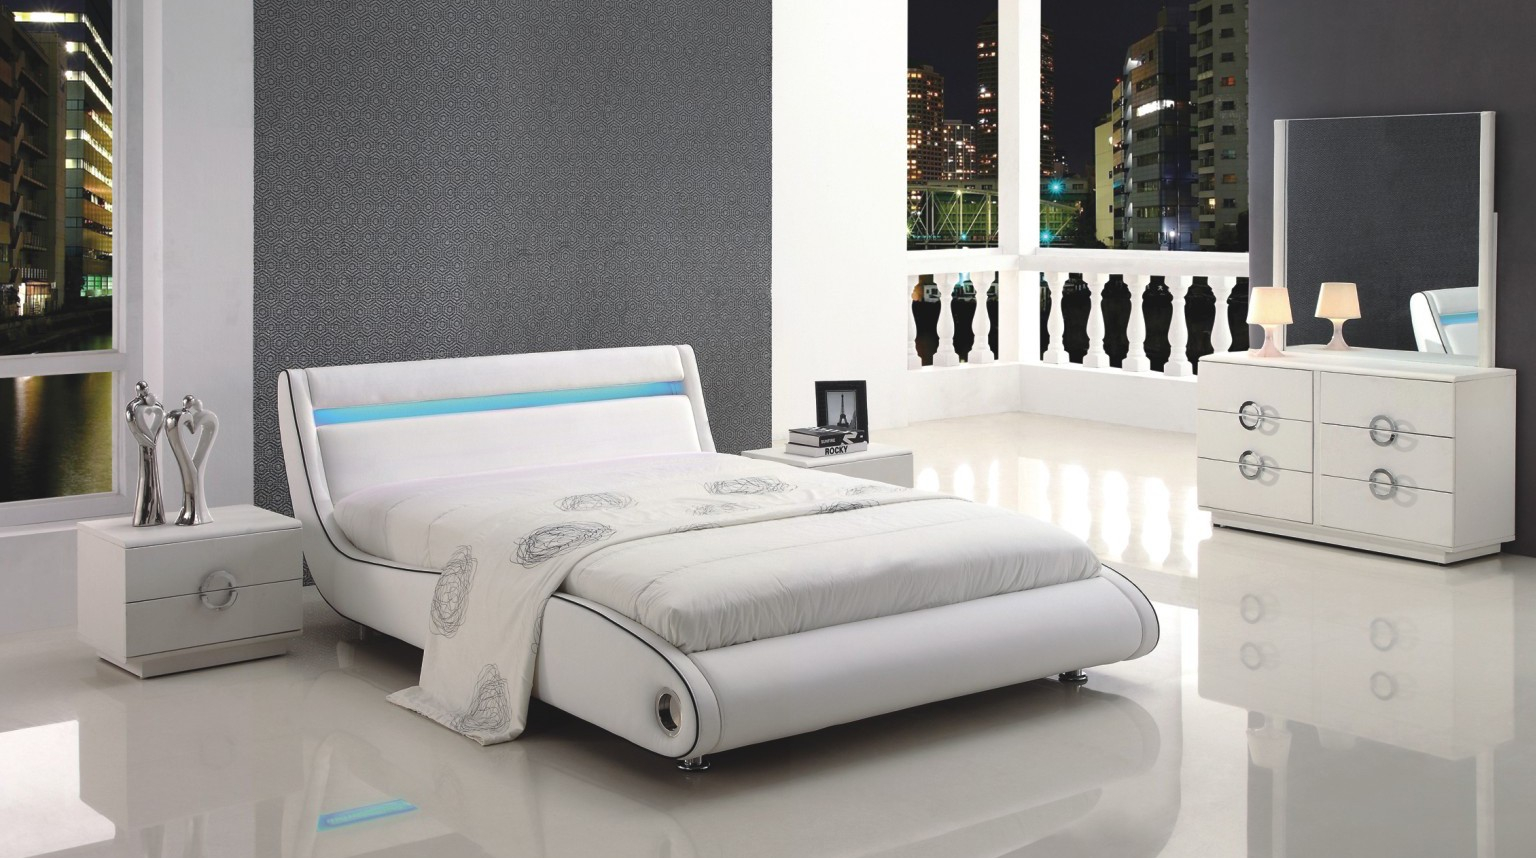 White King Bedroom Set The New Way Home Decor King Bedroom Set within Modern King Size Bedroom Set